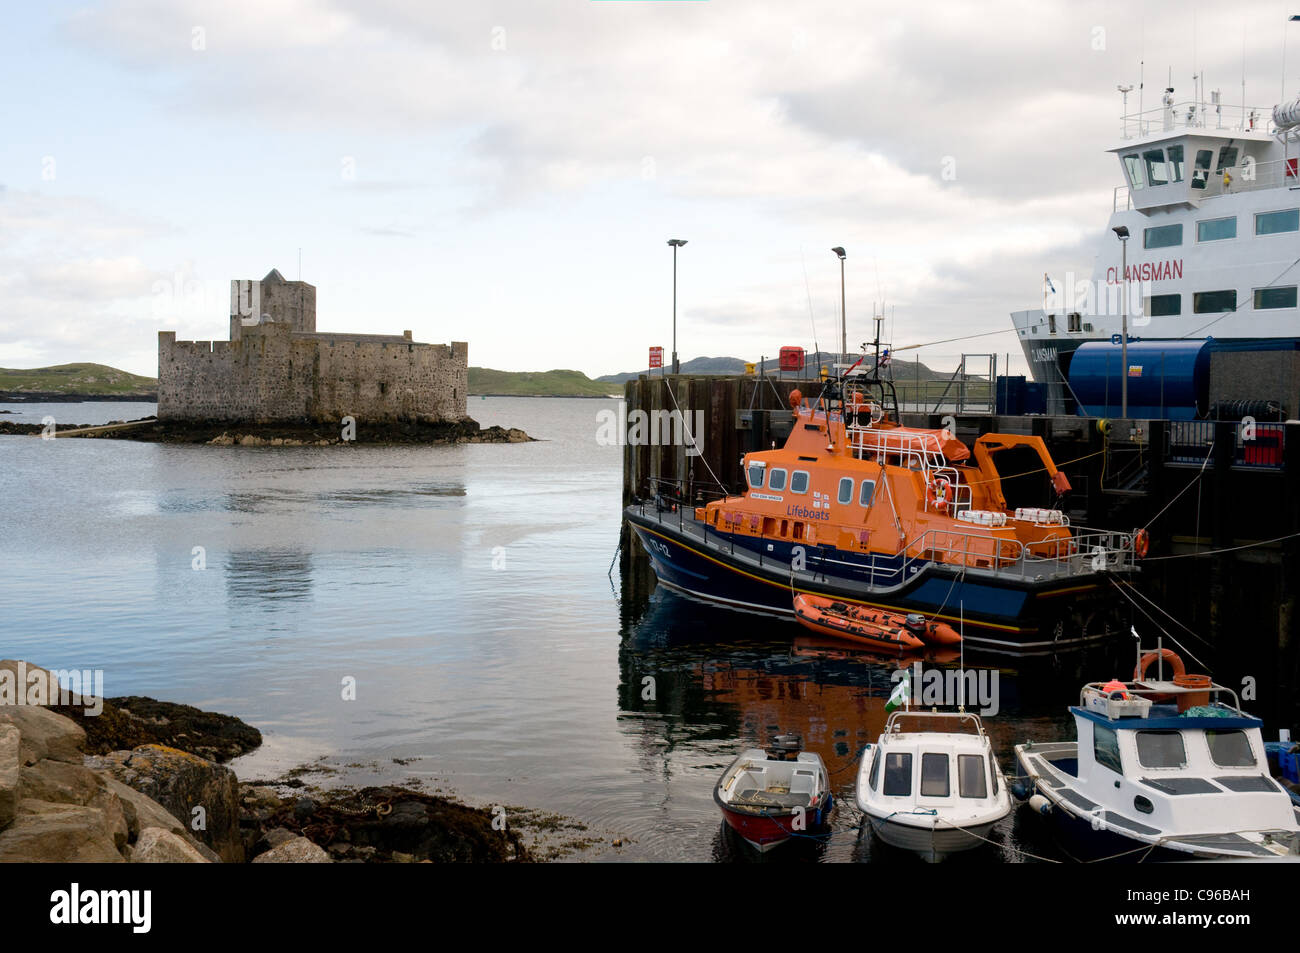 The RNLB lifeboat Edna Windsor is moored in Castlebay on the island of Barra ready for duty. - Stock Image